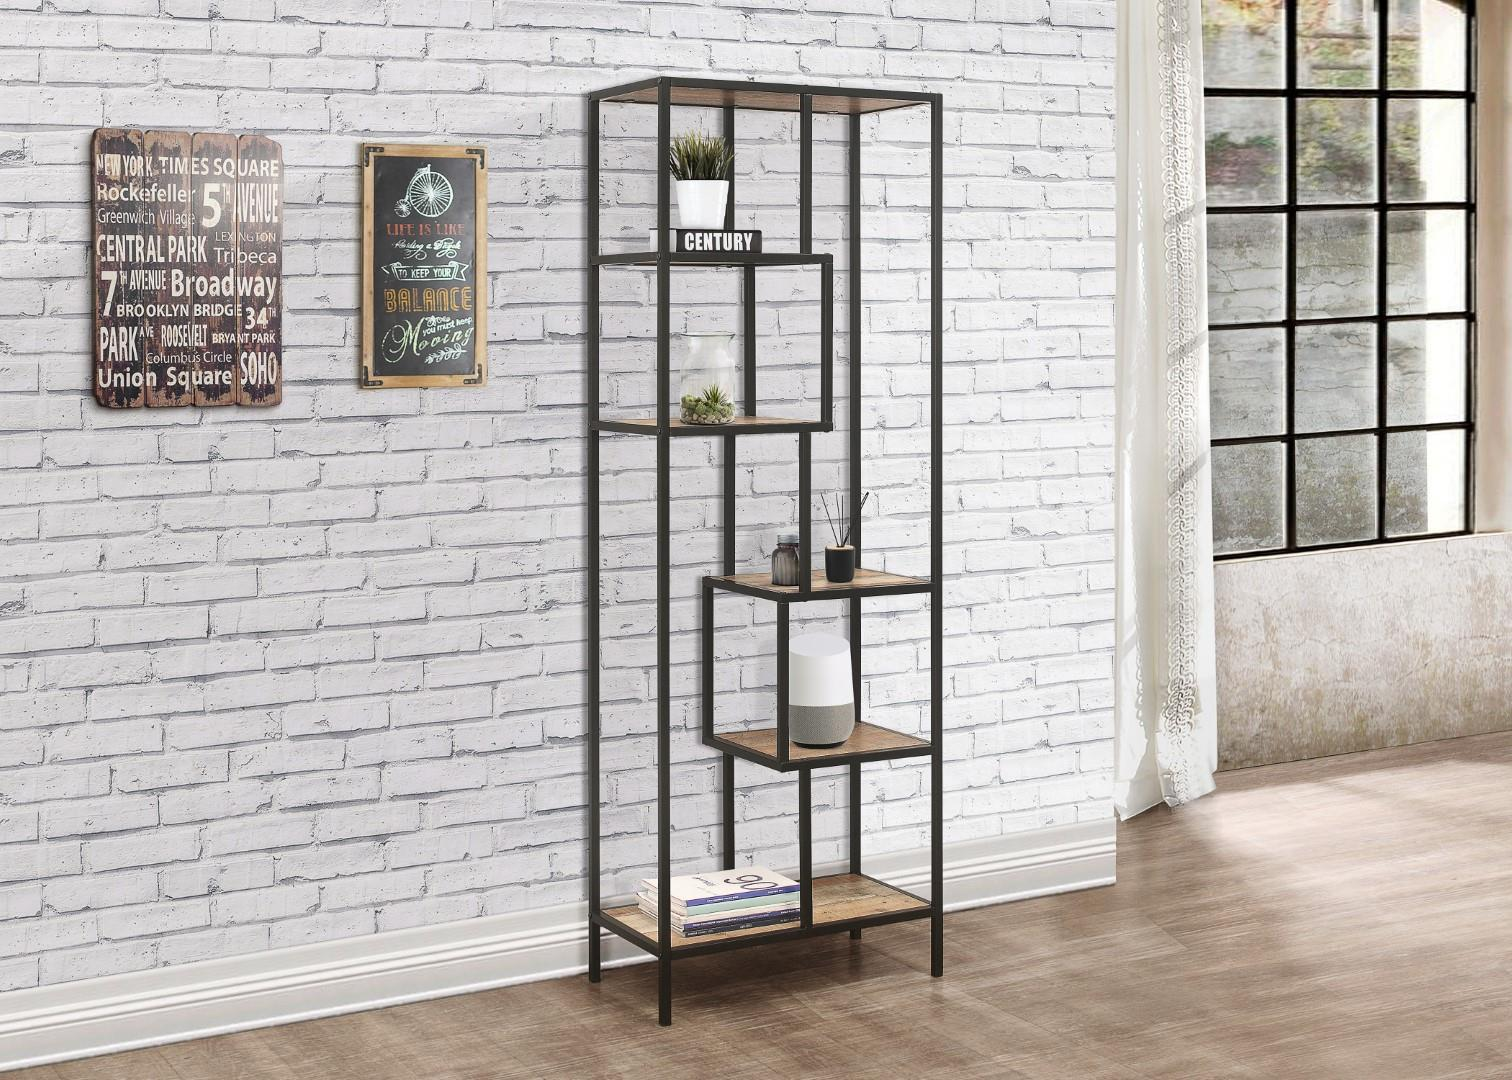 Birlea Urban Industrial Chic Tall Bookcase Shelving Unit Rustic Metal Wood